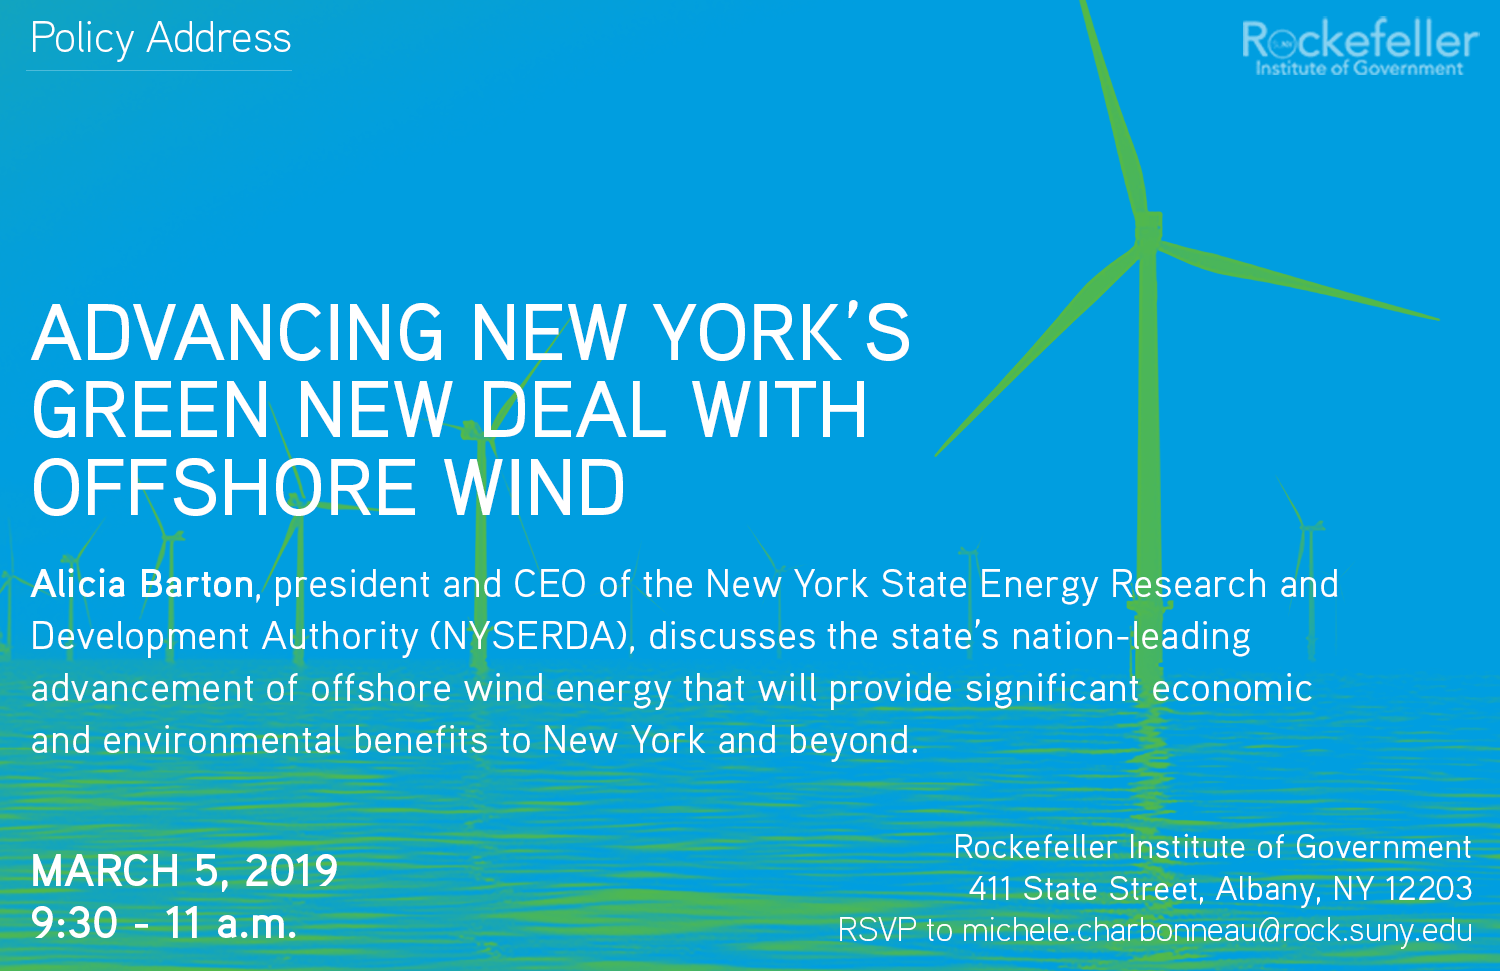 Advancing New York S Green New Deal With Offshore Wind Rockefeller Institute Of Government - 43+ Social Benefits Of Wind Energy Pics